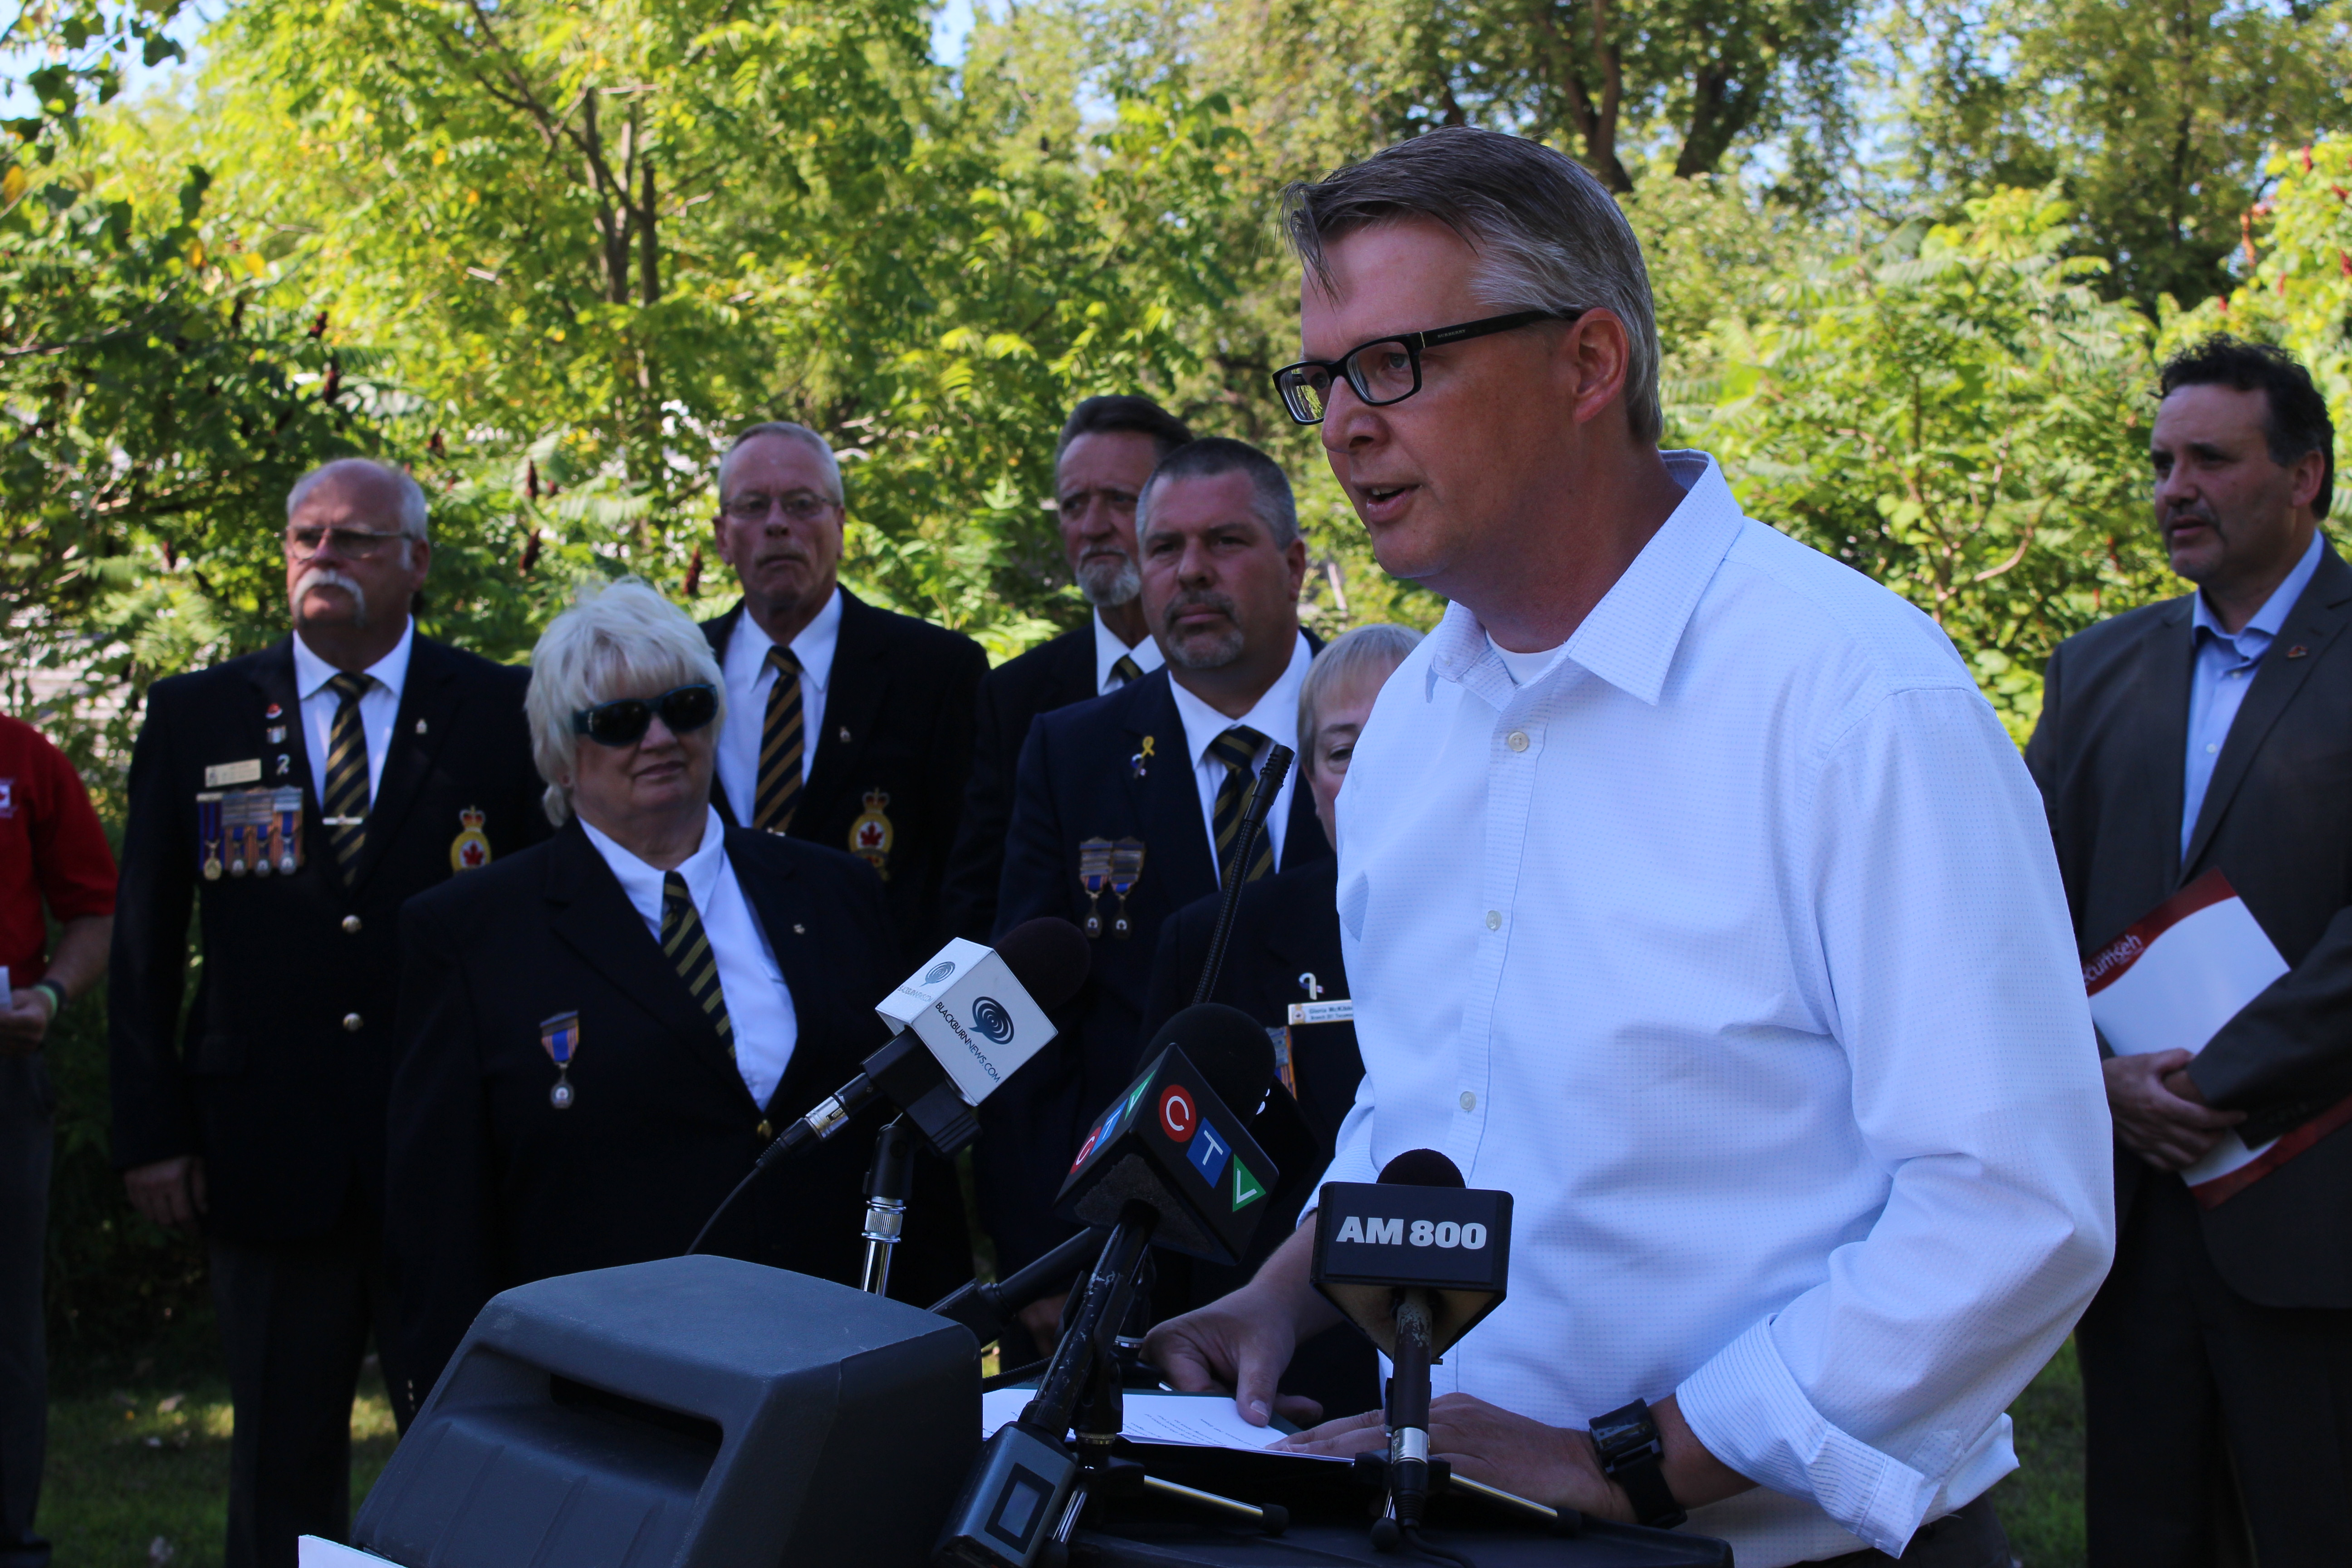 ERCA General Manager Richard Wyma at an announcement for the Chrysler Canada Greenway, July 31, 2015. (Photo by Mike Vlasveld)